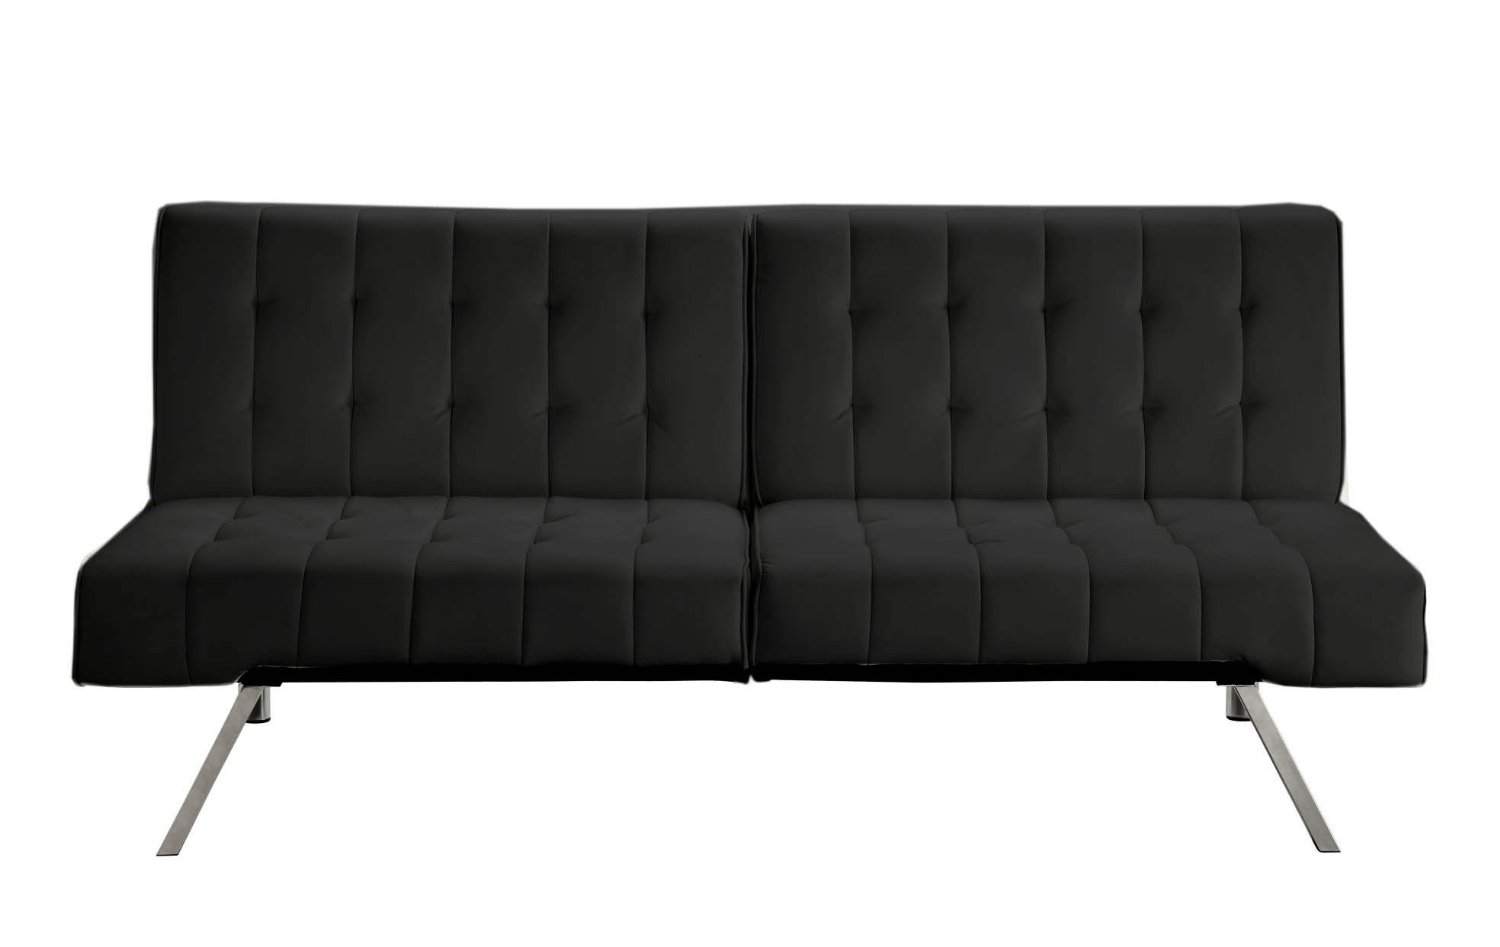 Simple Black Leather Sleeper Sofas (View 8 of 10)